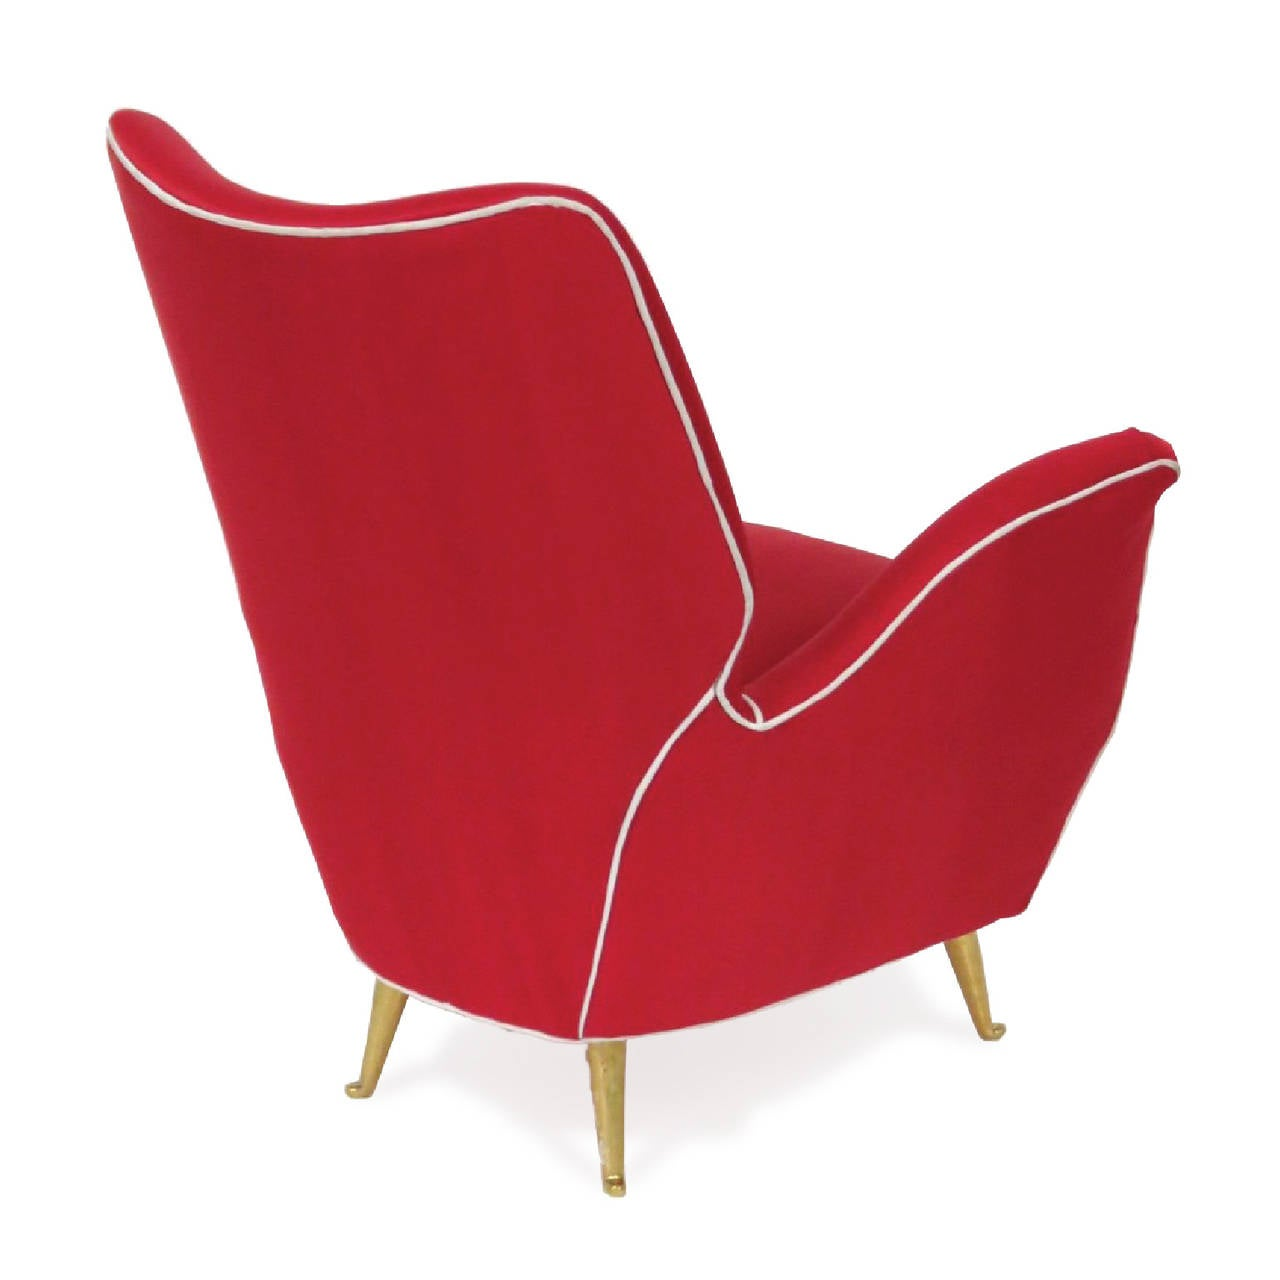 Italian modern armchair with brass legs manufactured by for Isa arredamenti